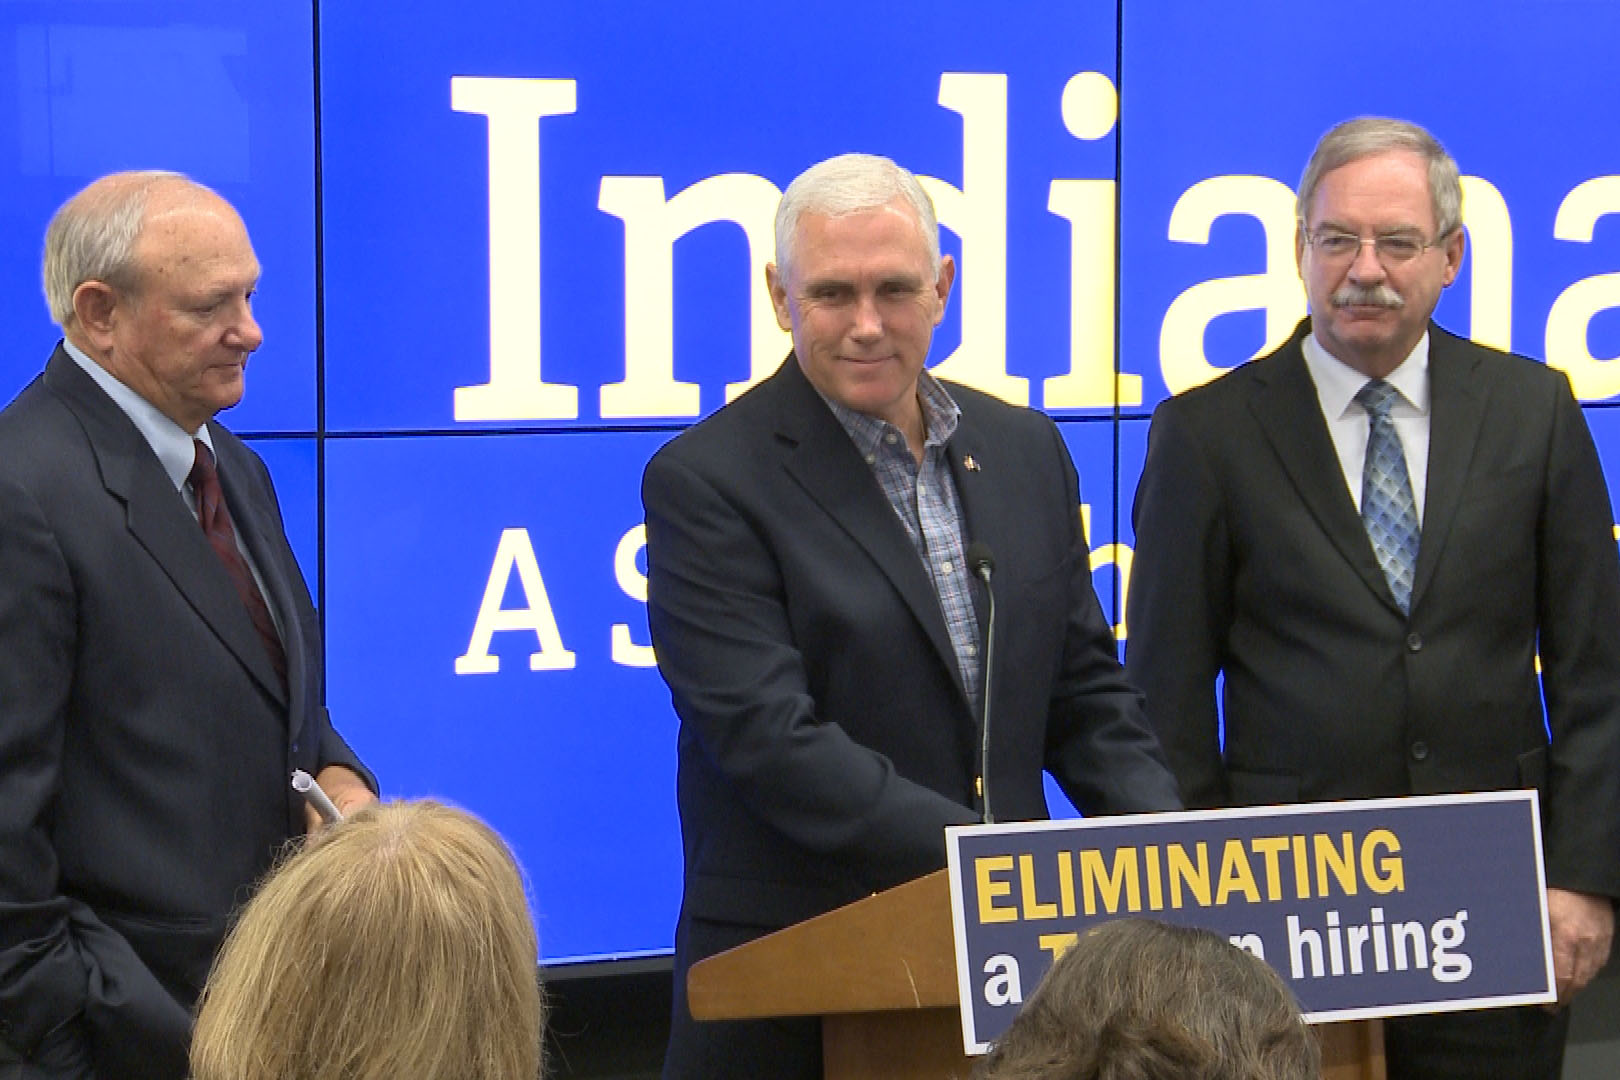 Governor Mike Pence, announcing the pay off, is flanked by Sen. Luke Kenley (R-Noblesville) on his right and Rep. Dan Leonard (R-Huntington) on his left.